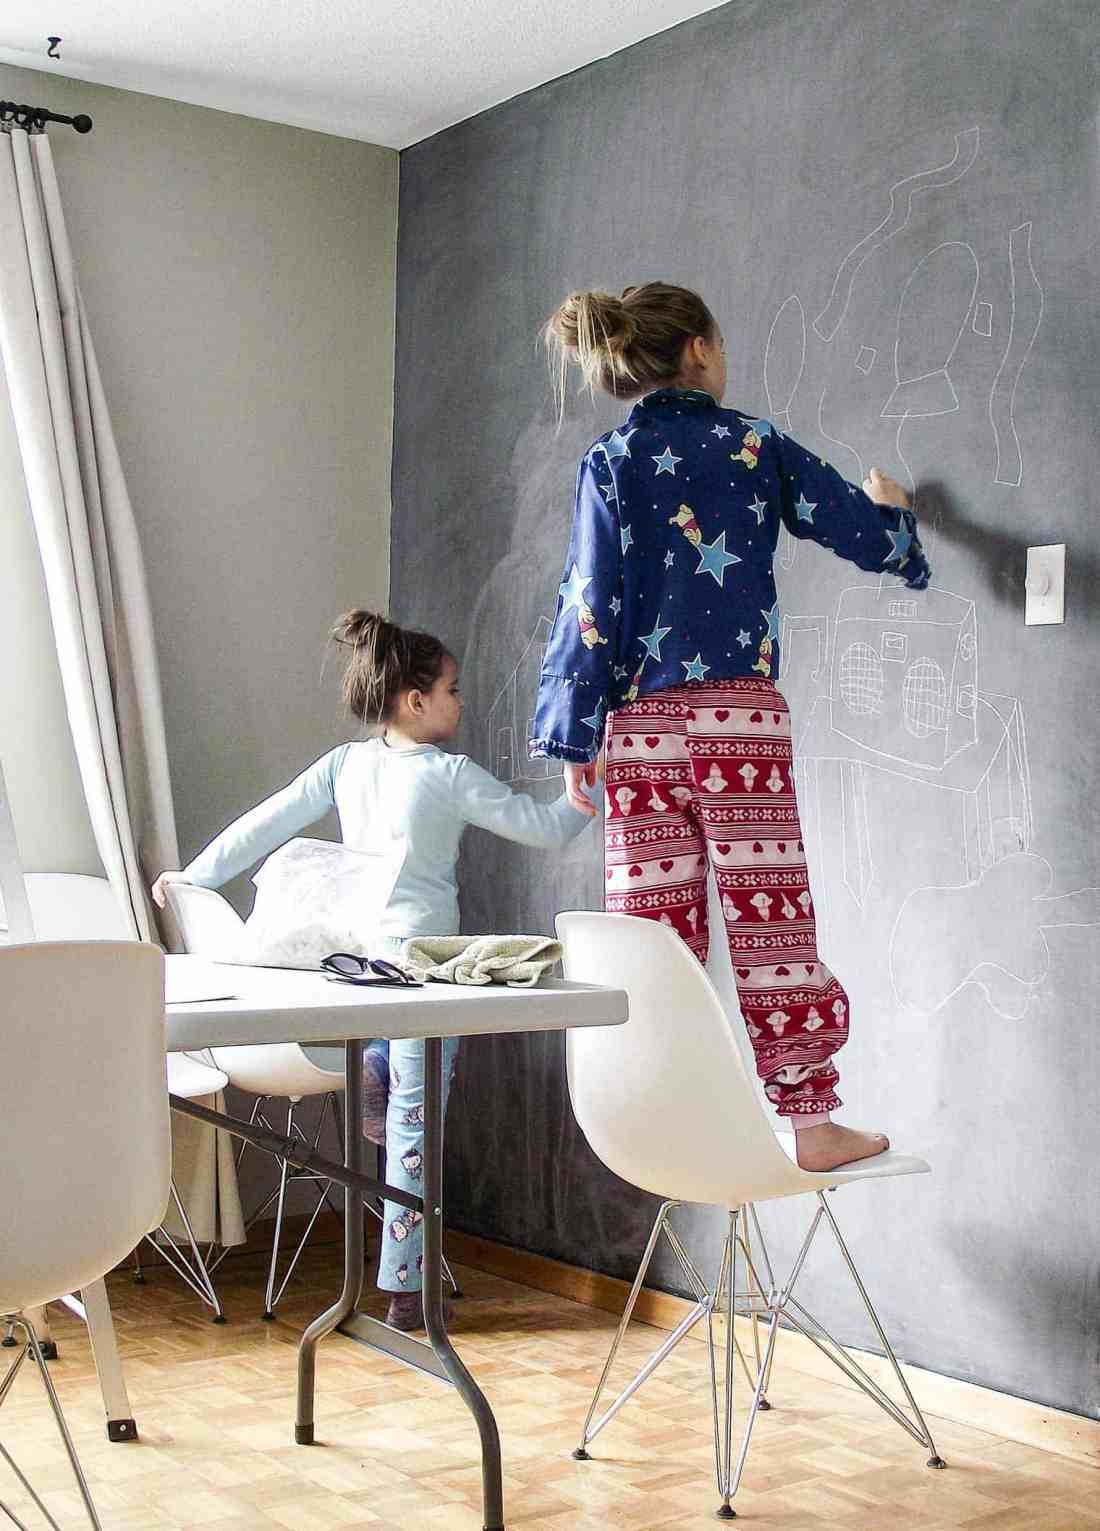 two girls in pajamas wiping chalk off a chalkboard wall